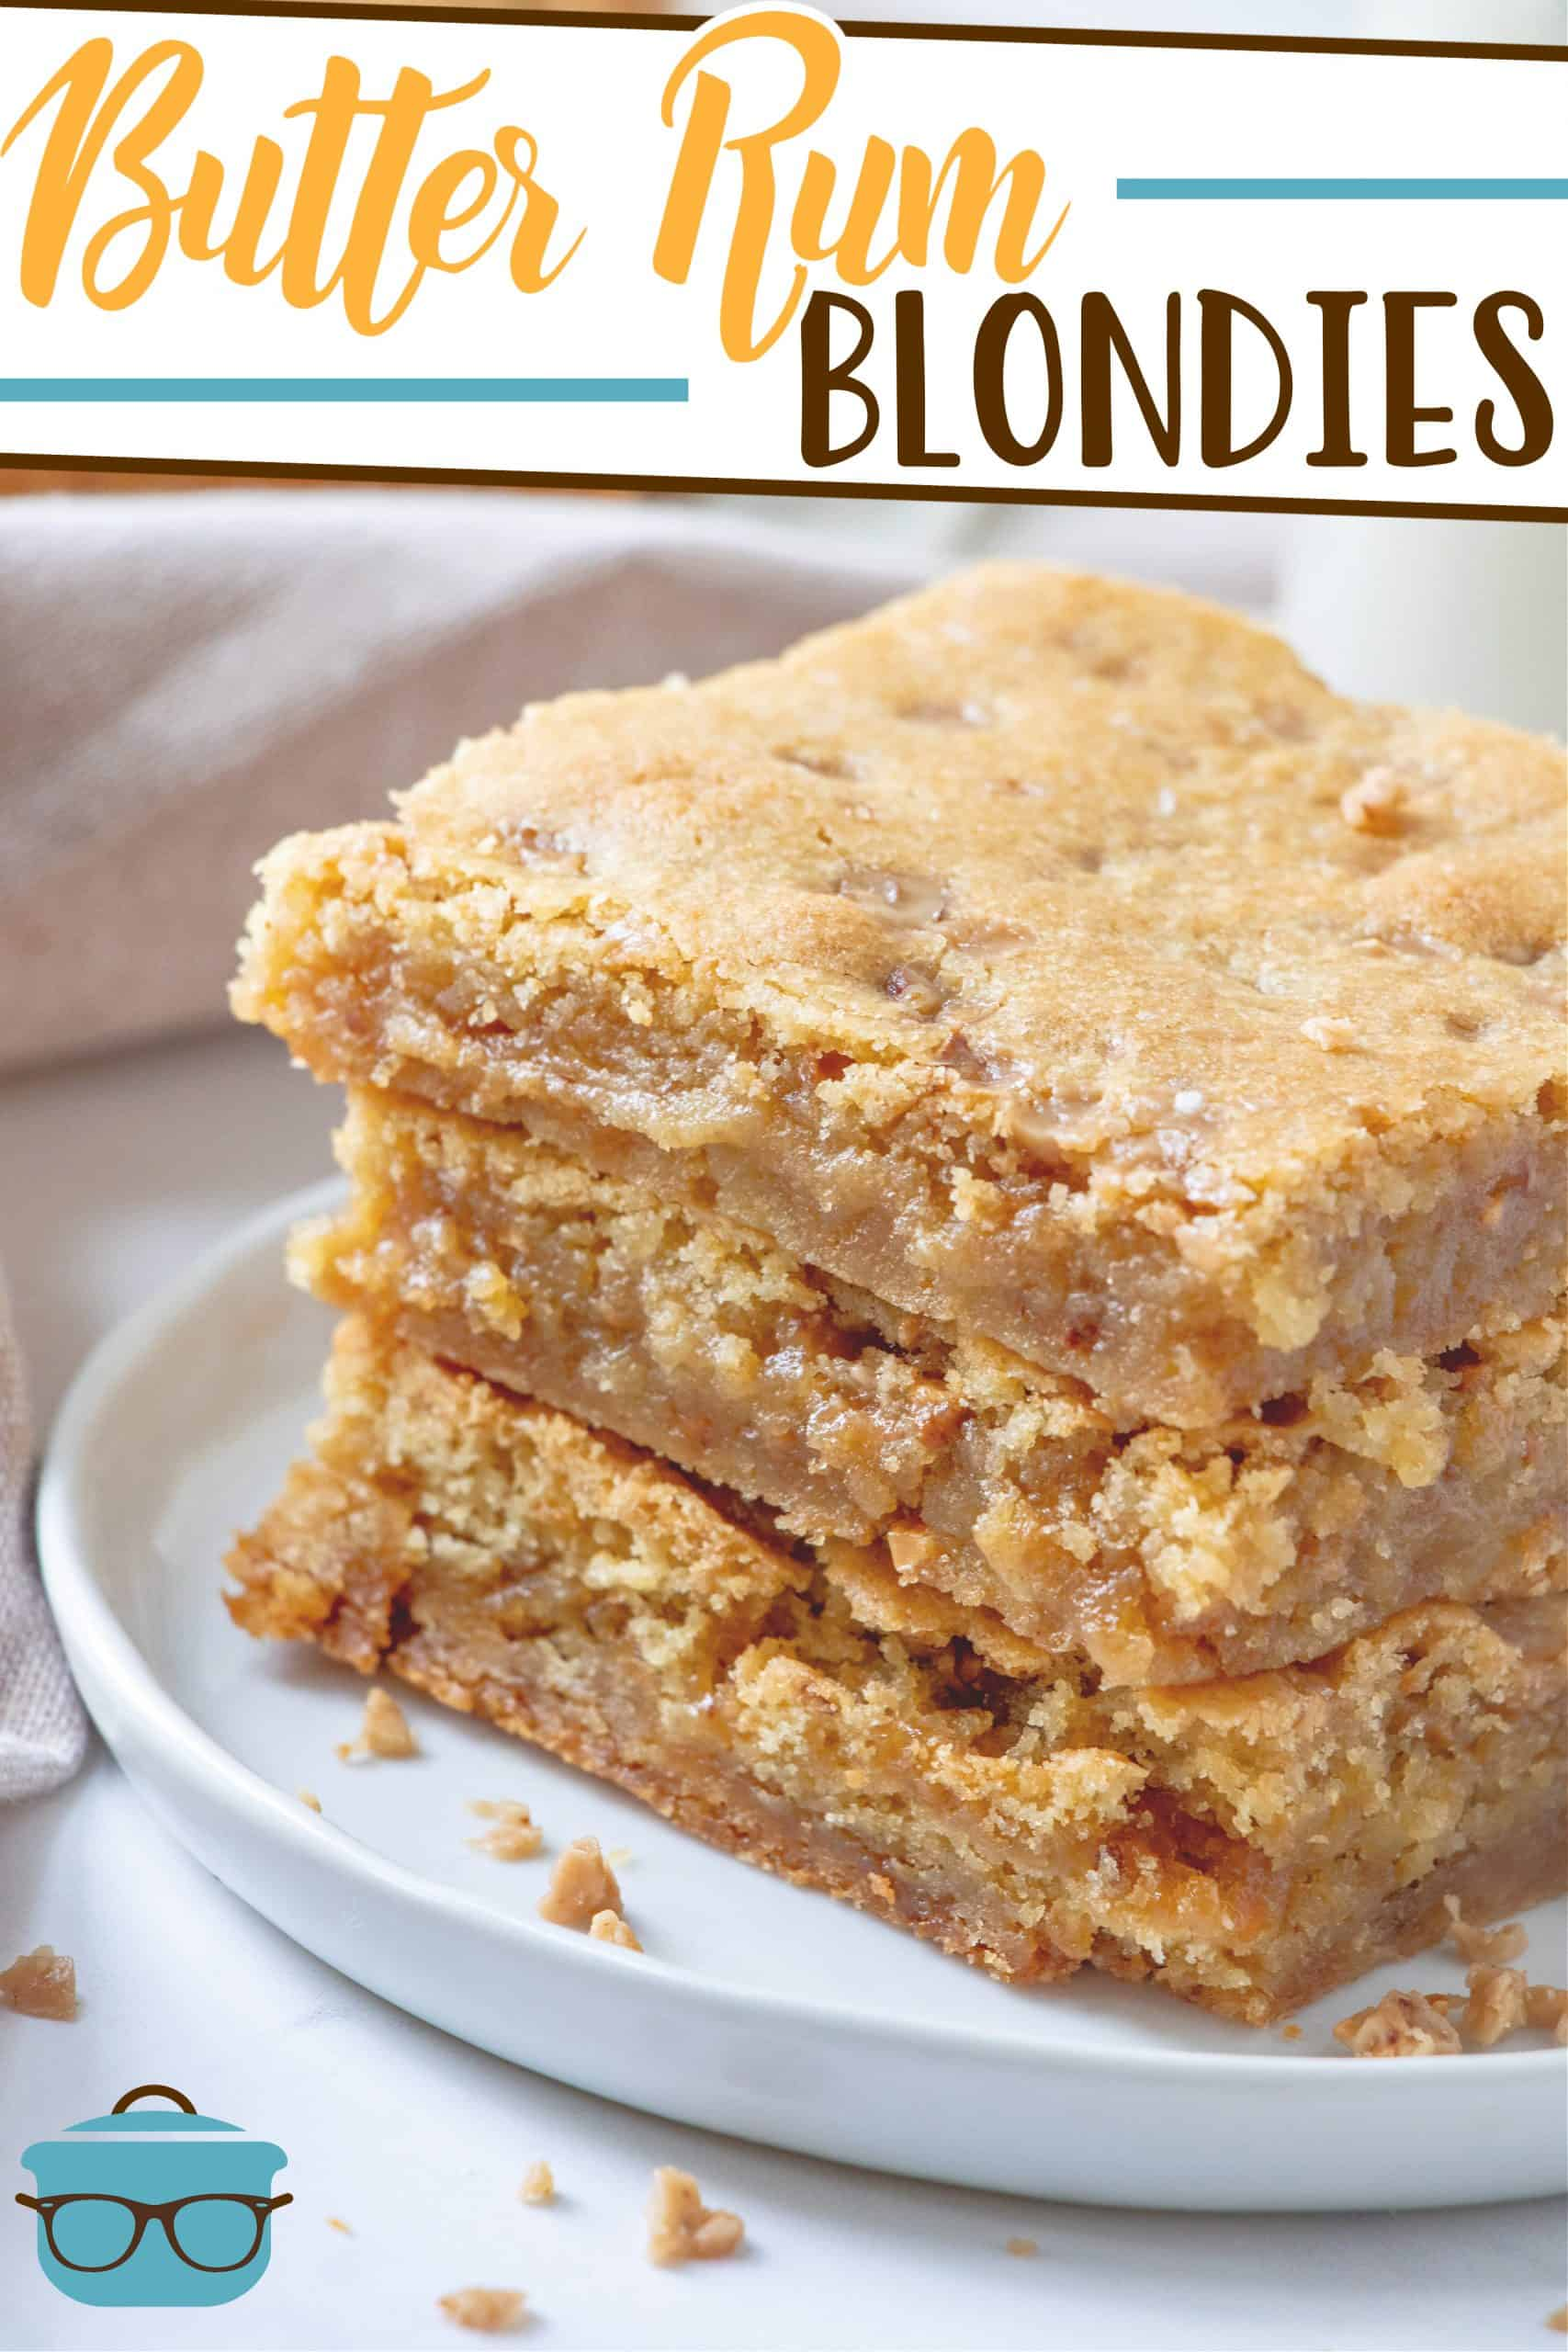 Easy Homemade Butter Rum Blondies recipe from The Country Cook, three blondies stacked on a white circle plate.